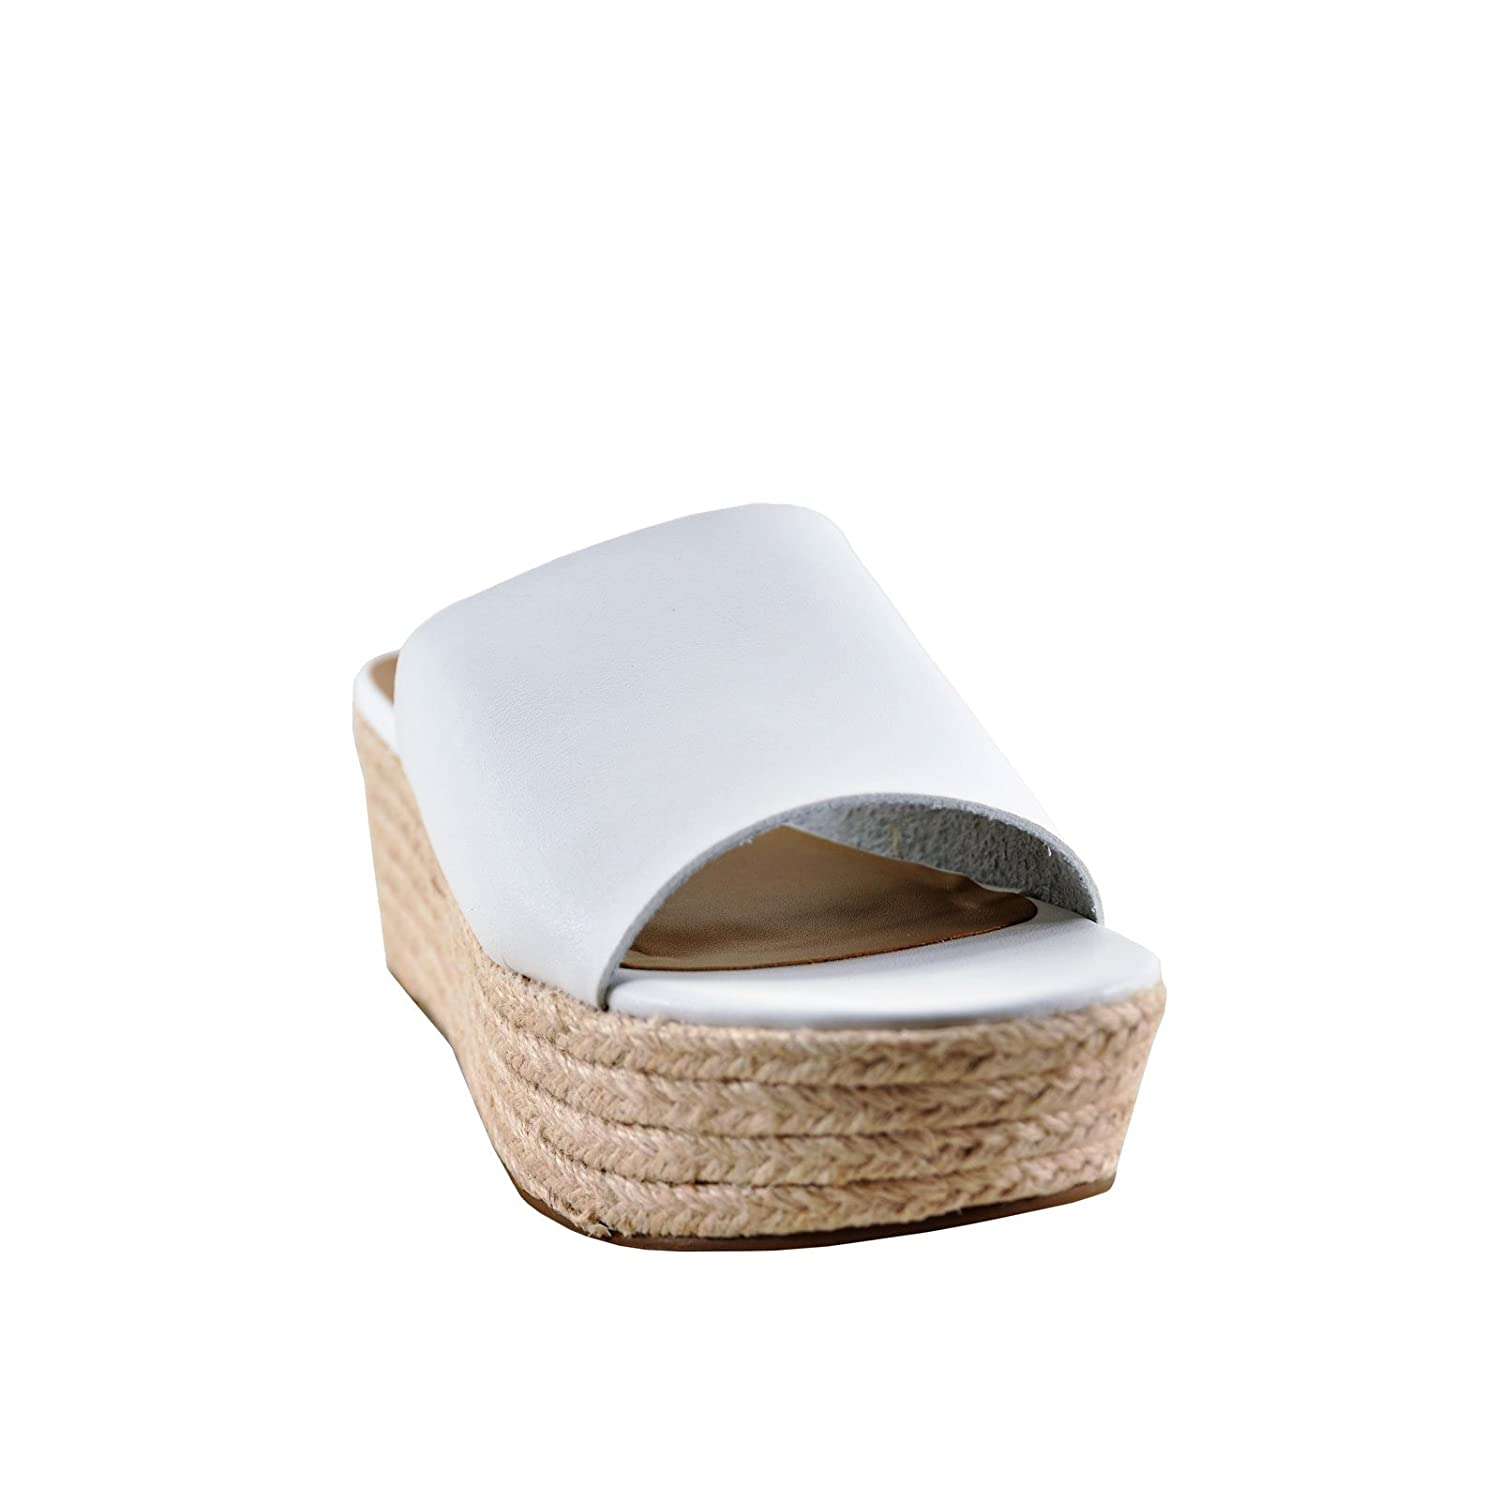 City Classified Strauss Women's Jute Wrapped Open Toe Wedge B07D5W8V9Y 6 B(M) US|White